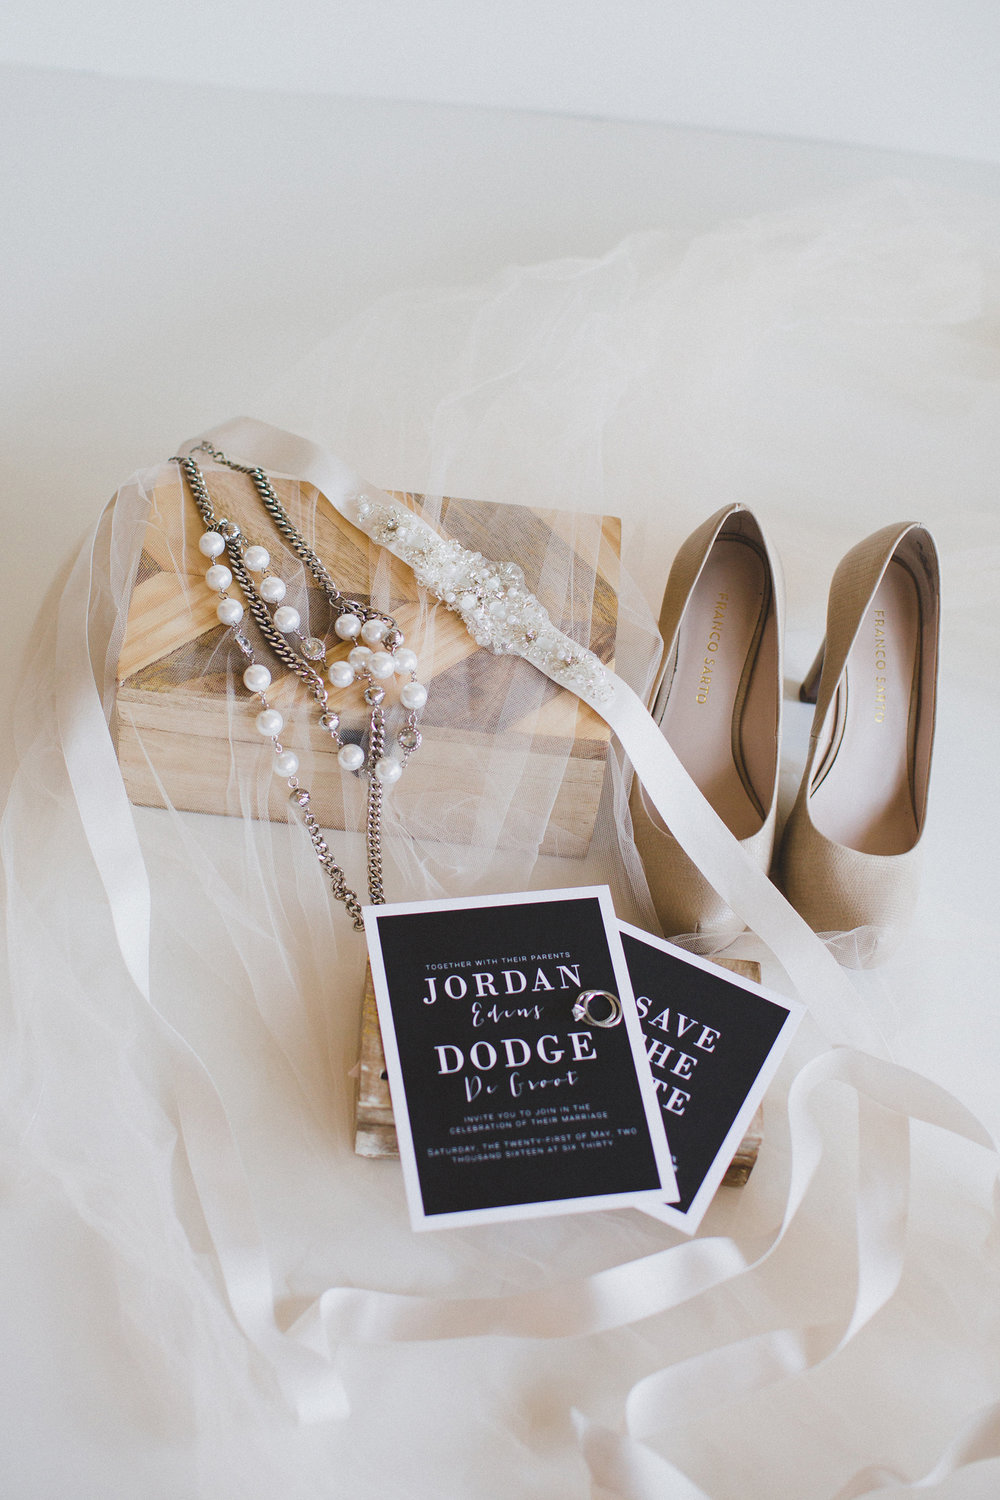 Tri Cities Photographer_Tri Cities Wedding Photographer_Jordan Edens Photography_My anniversary_Wedding details_Wedding shoes 1